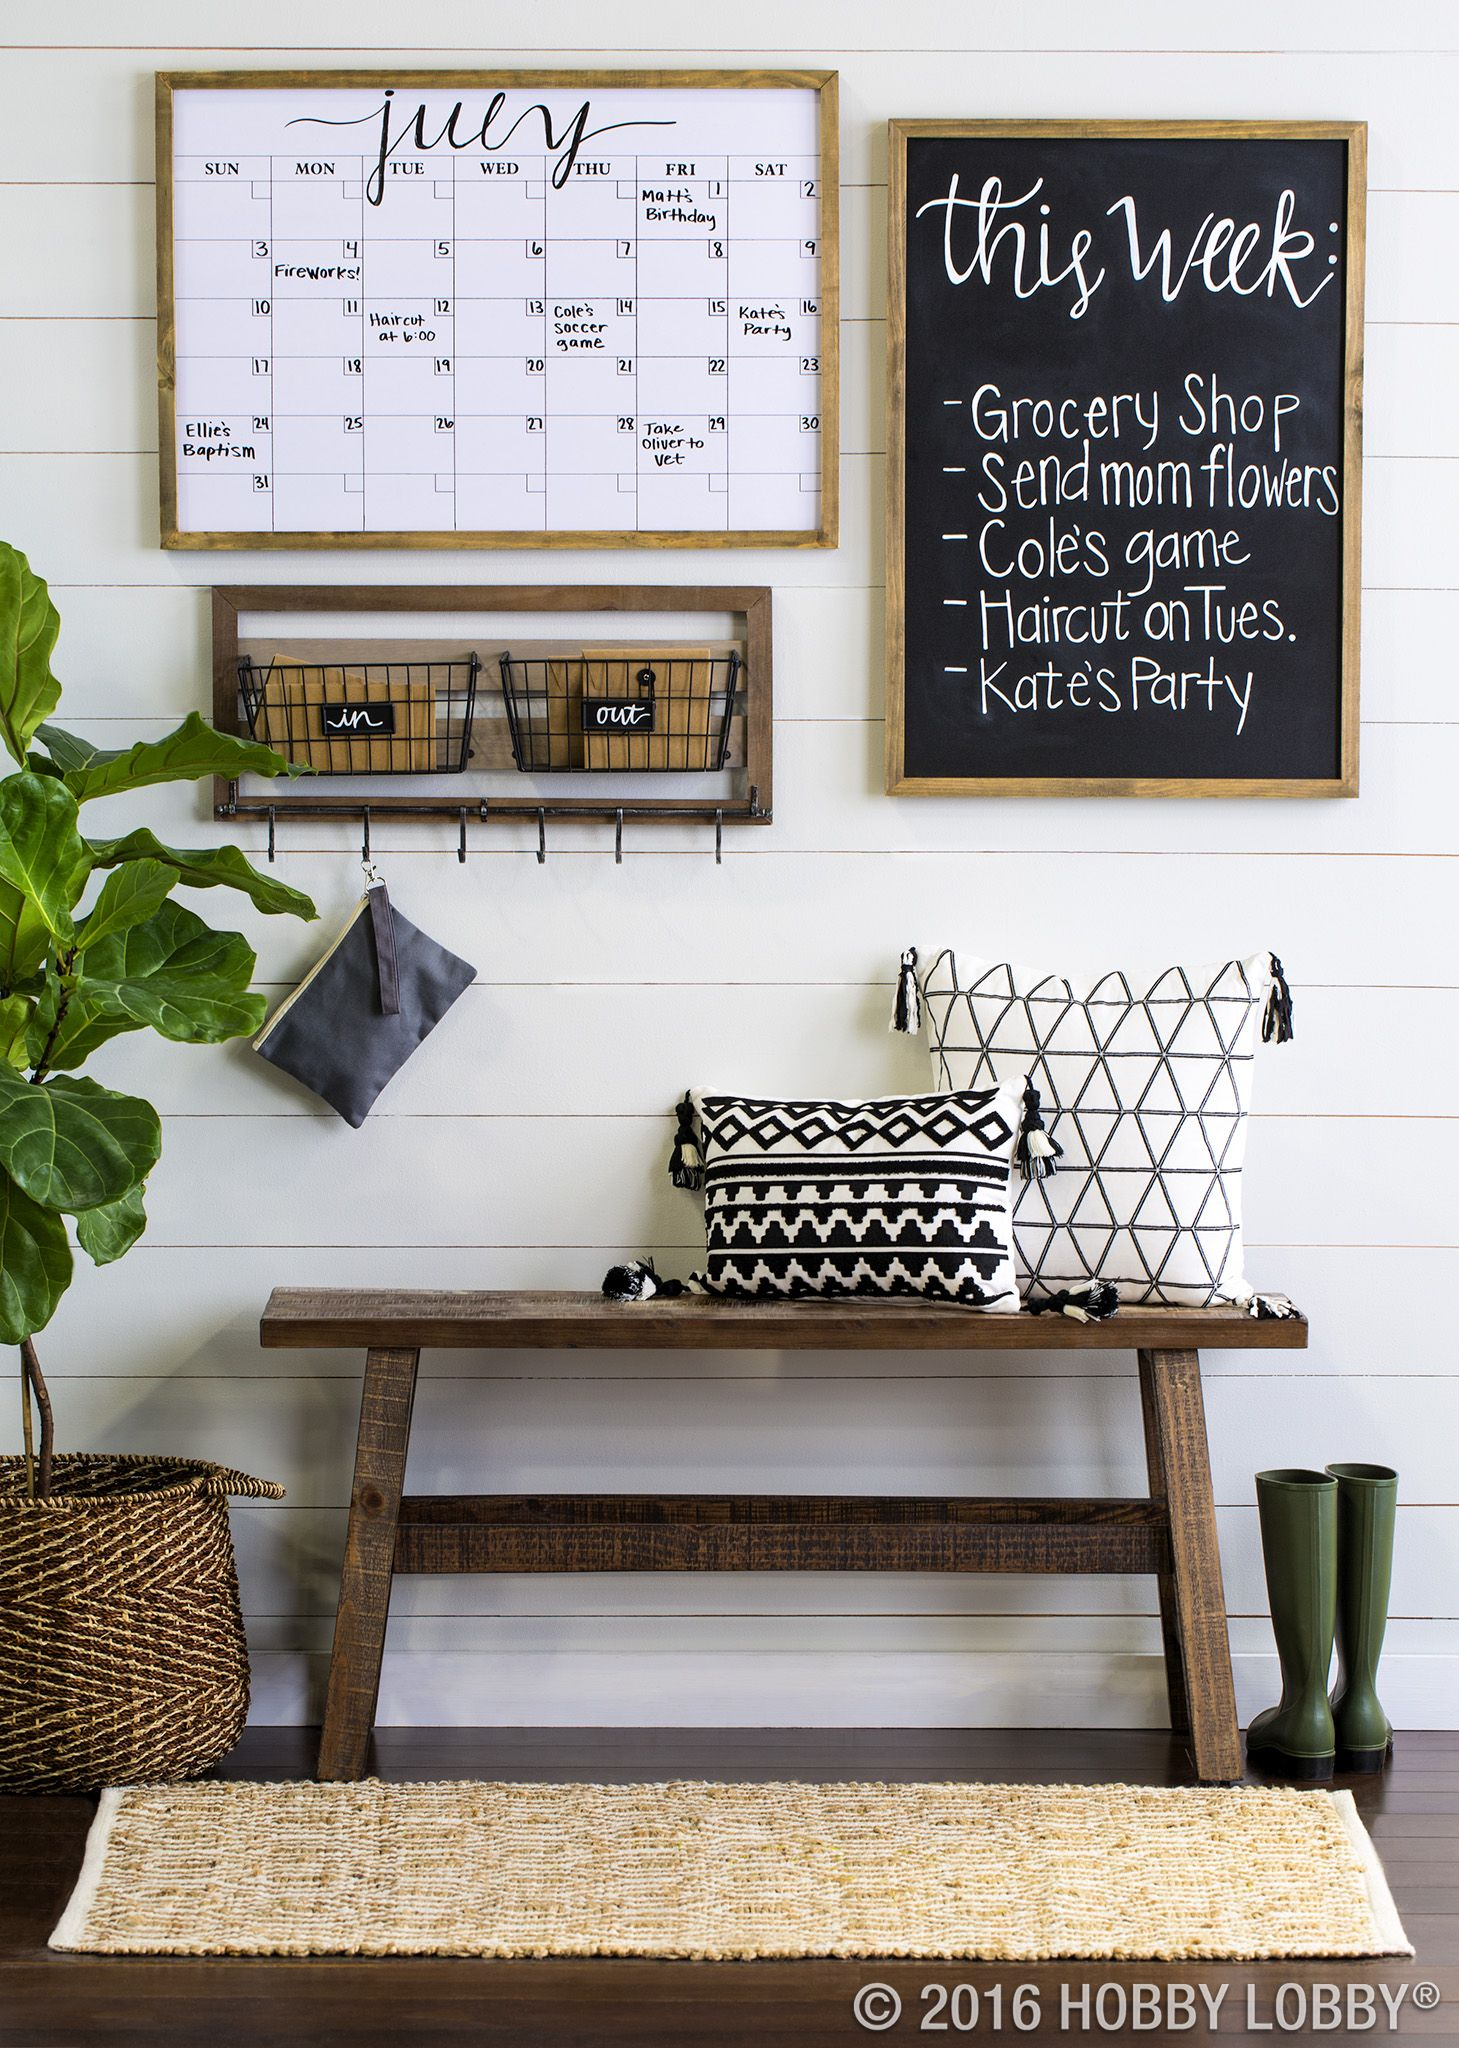 Keep your family organized u uptodate with an ontrend command